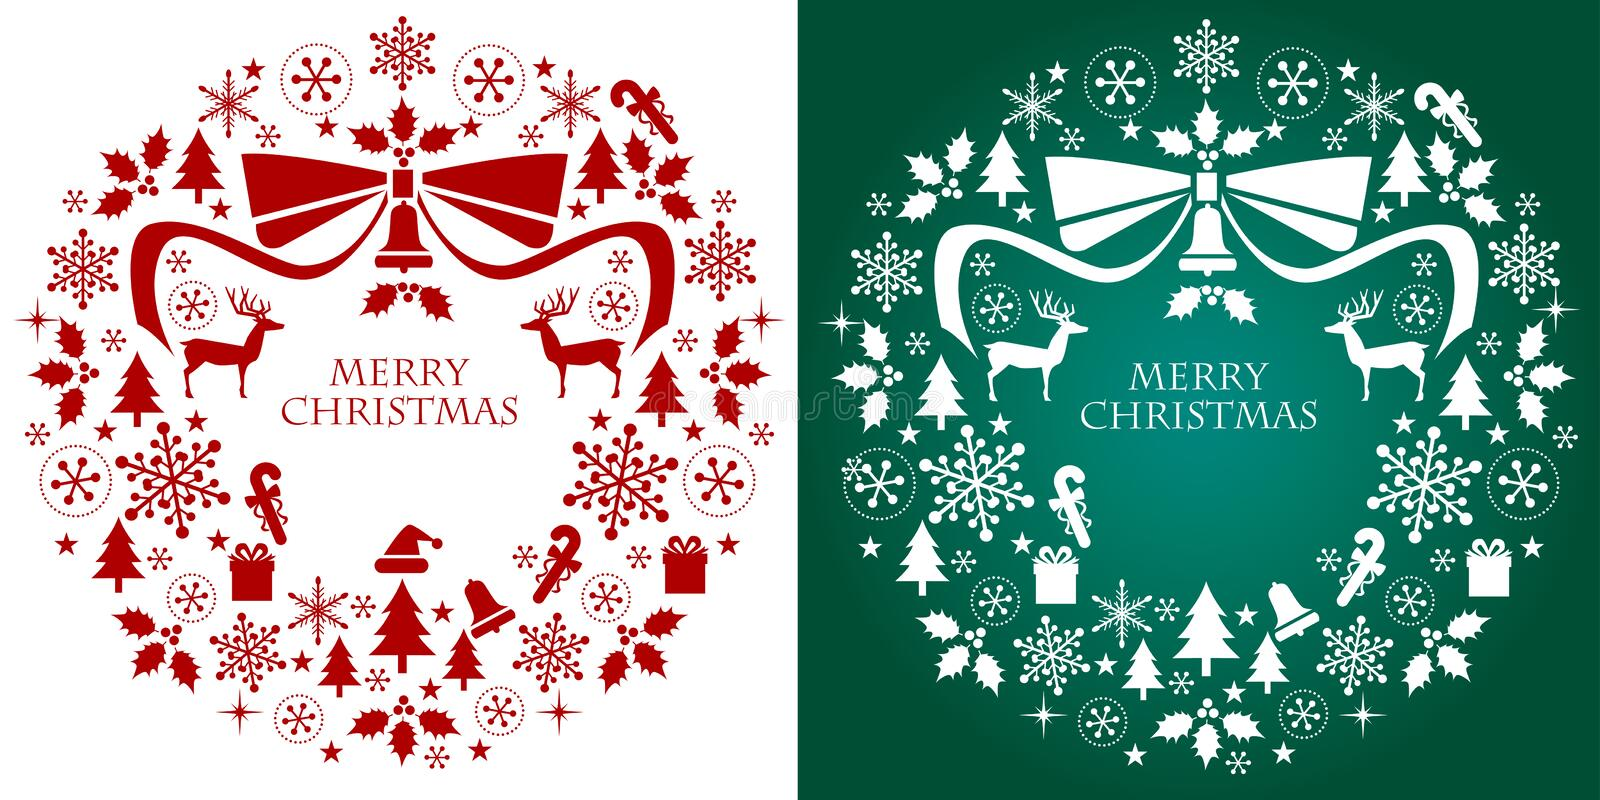 Download Christmas Silhouette Collection Wreath Stock Vector - Illustration of design, collection: 27690343